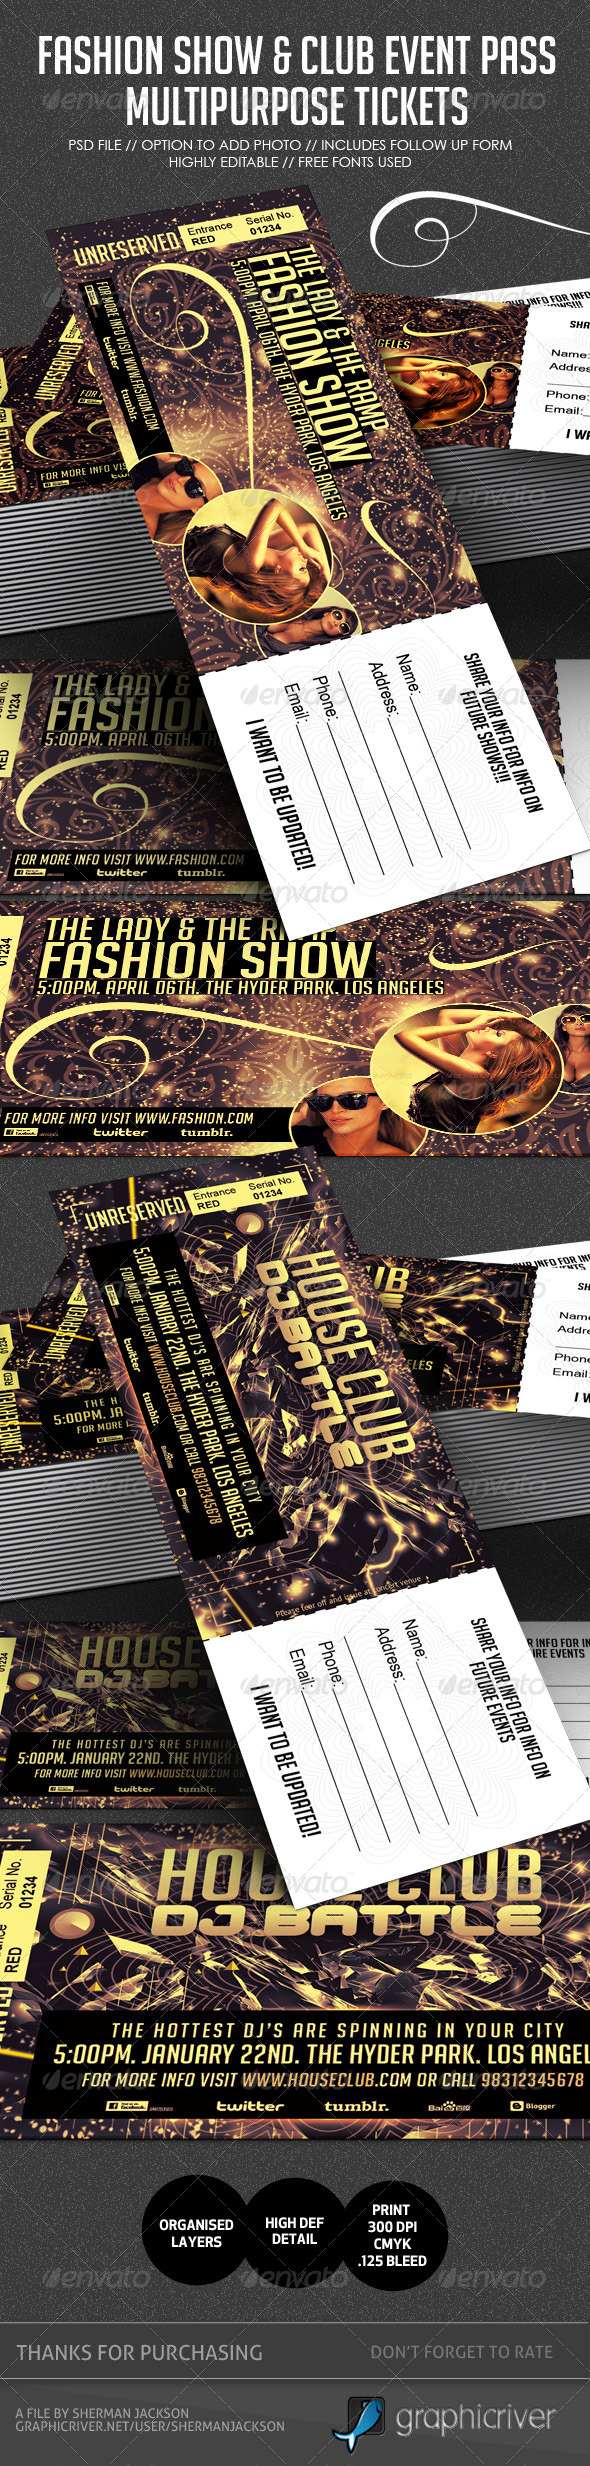 Fashion Show & Club Event Multipurpose Tickets - Miscellaneous Print Templates